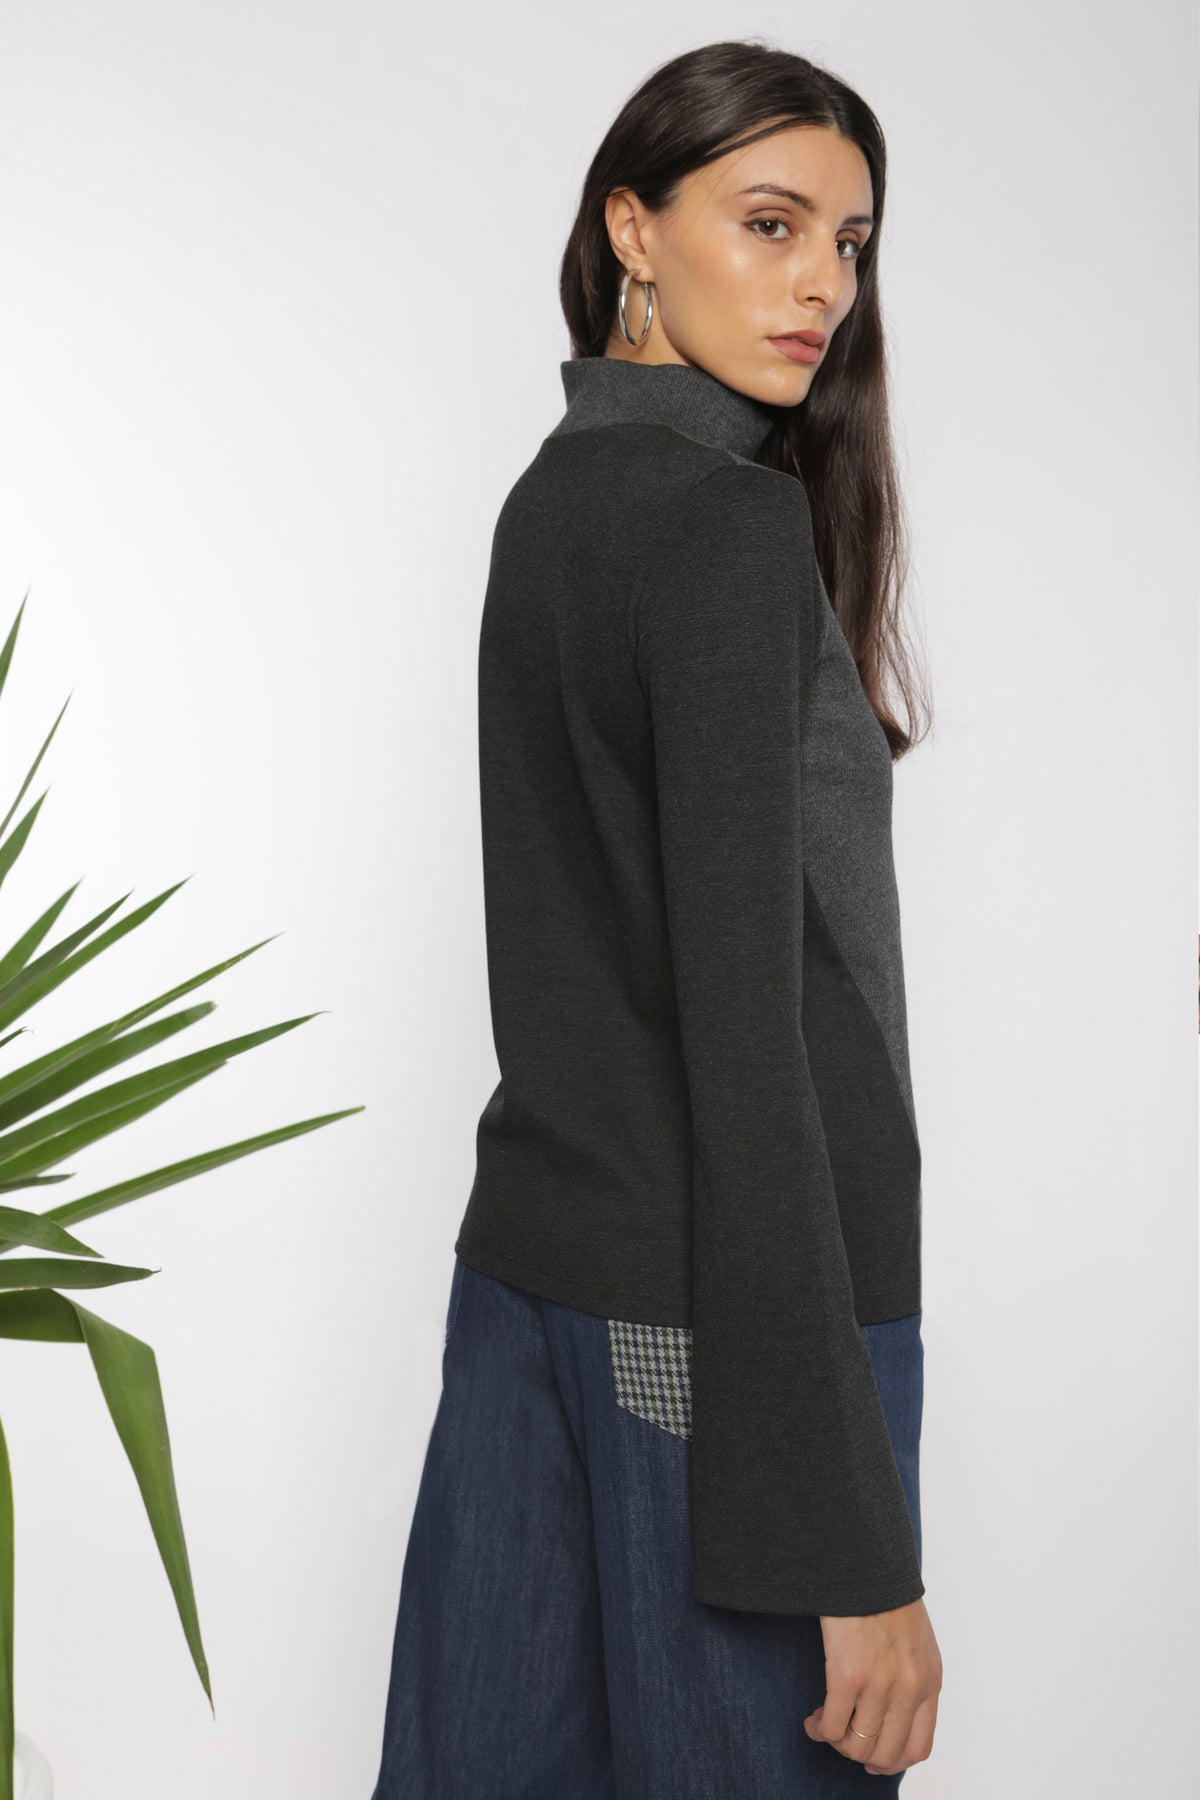 Architectural knit top